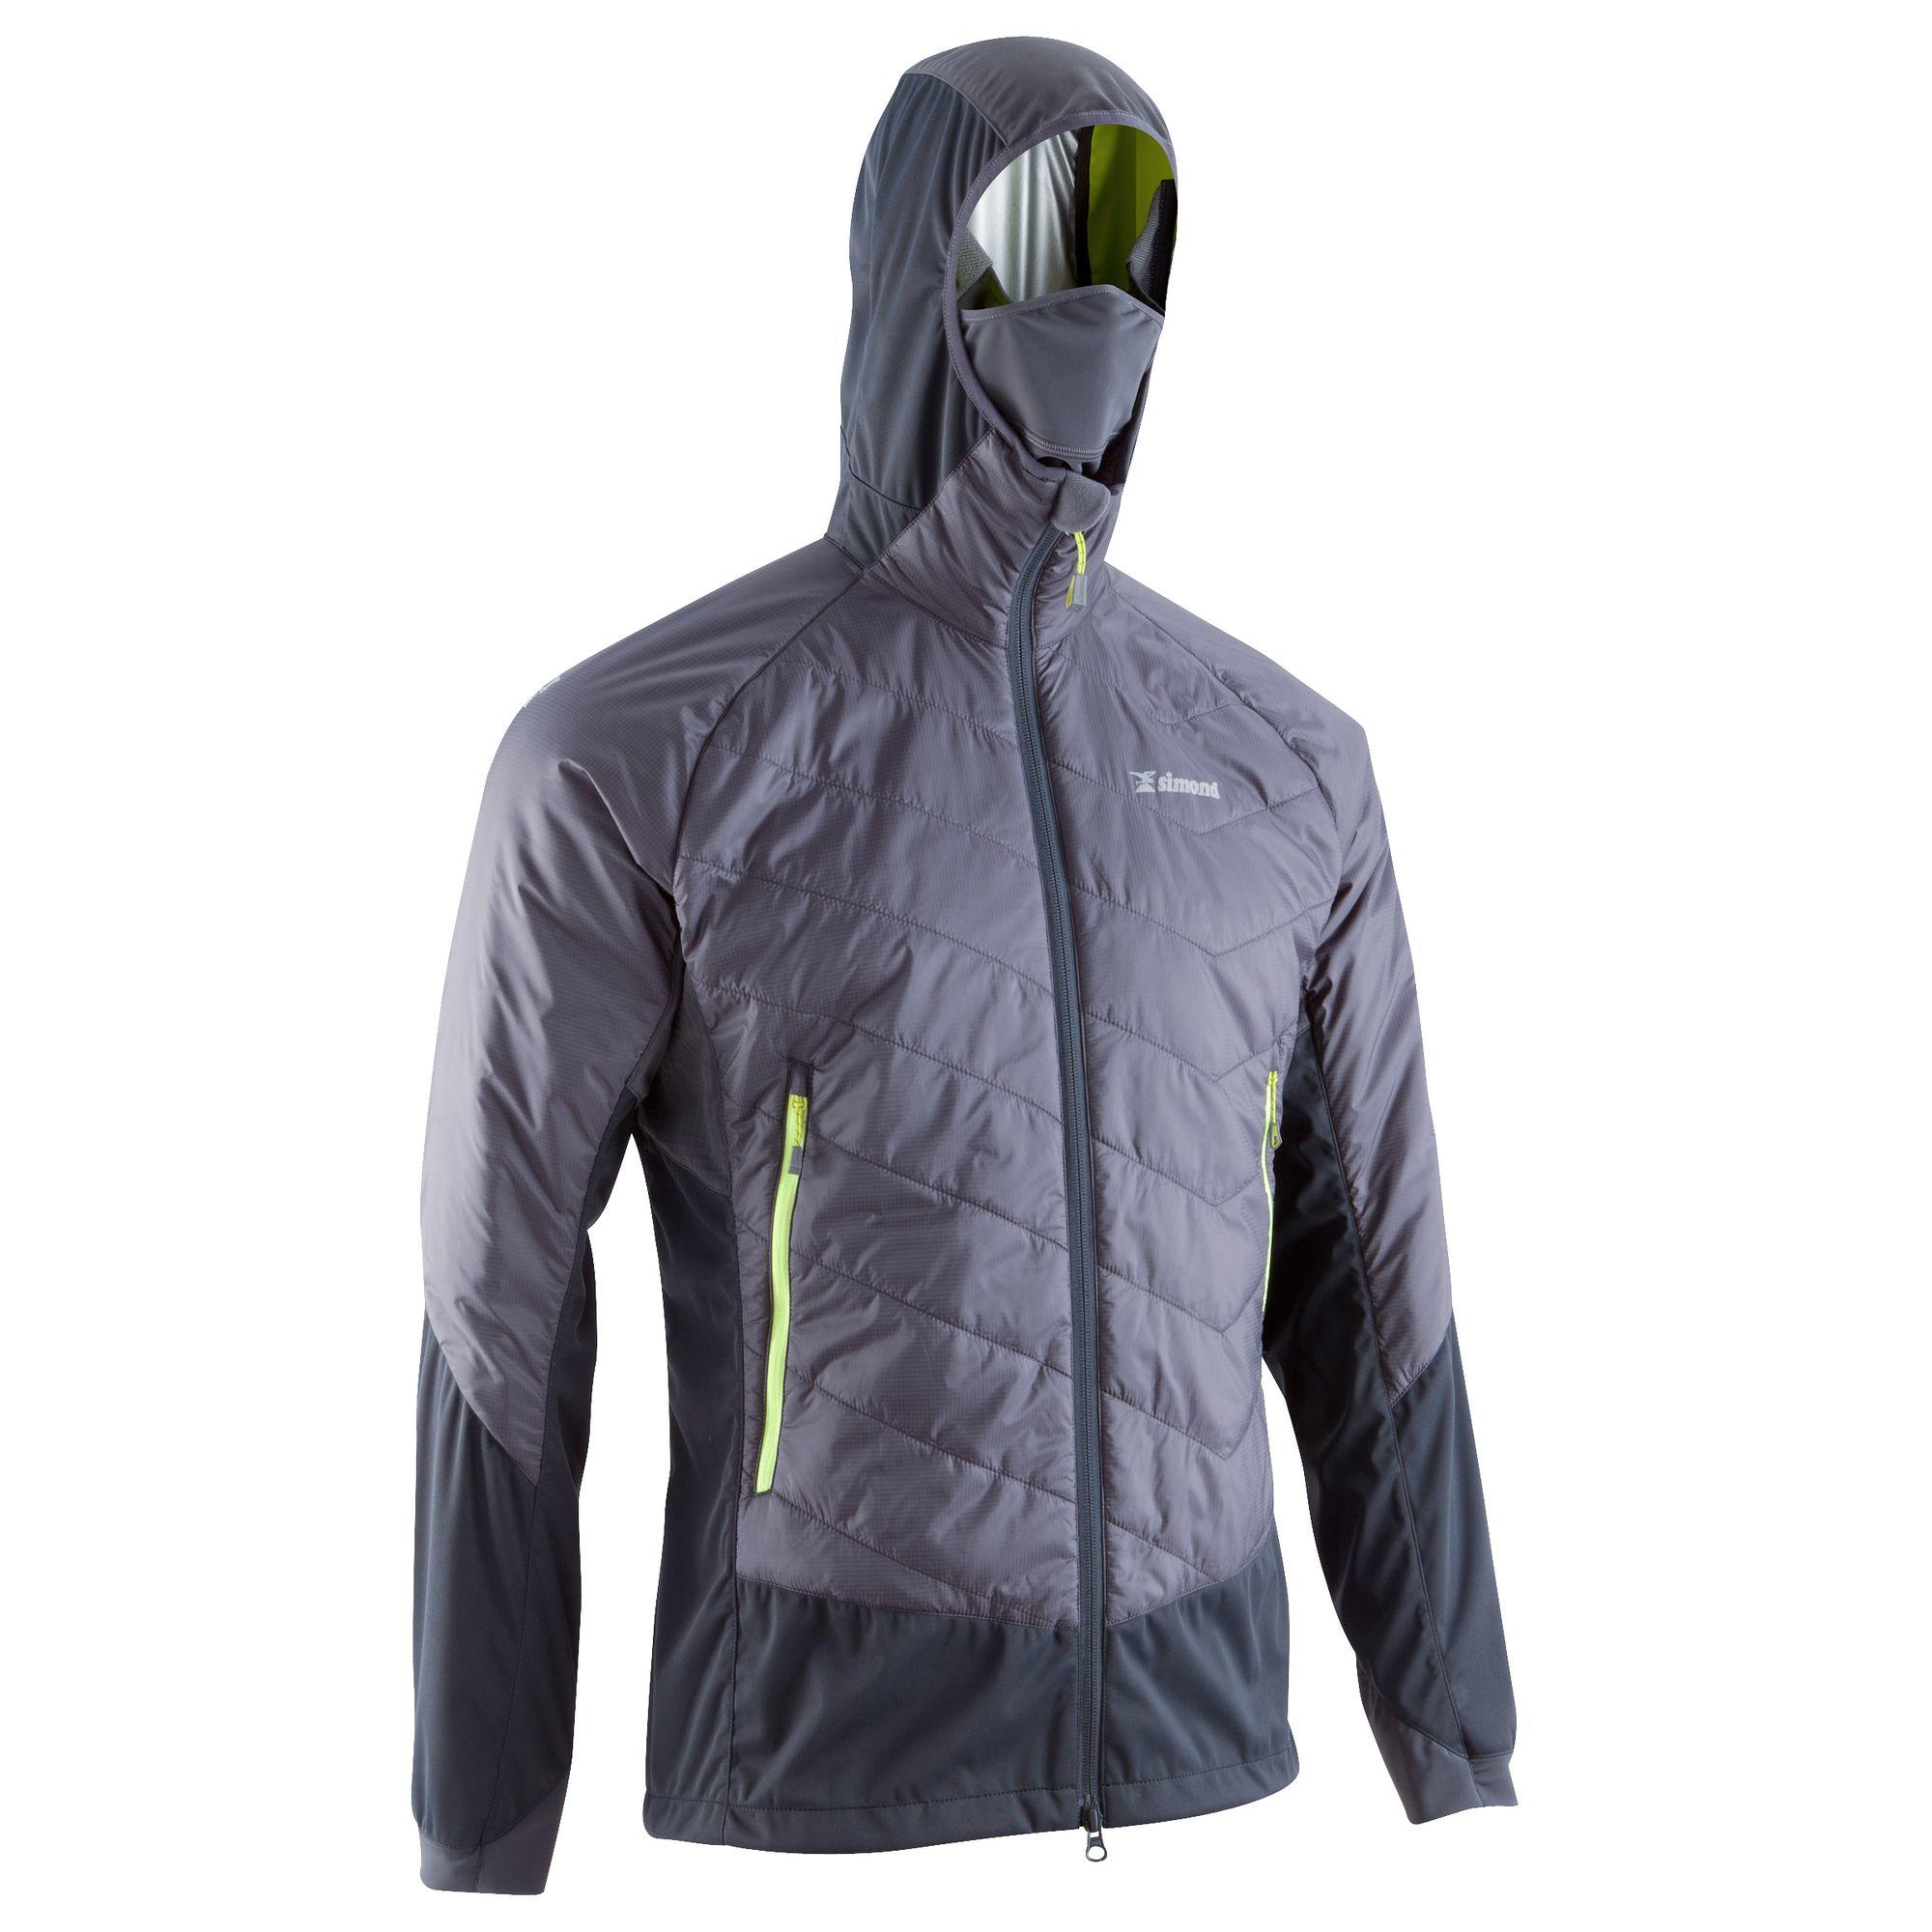 Sprint Men's Hybrid Jacket - Anthracite Grey & Aniseed Green